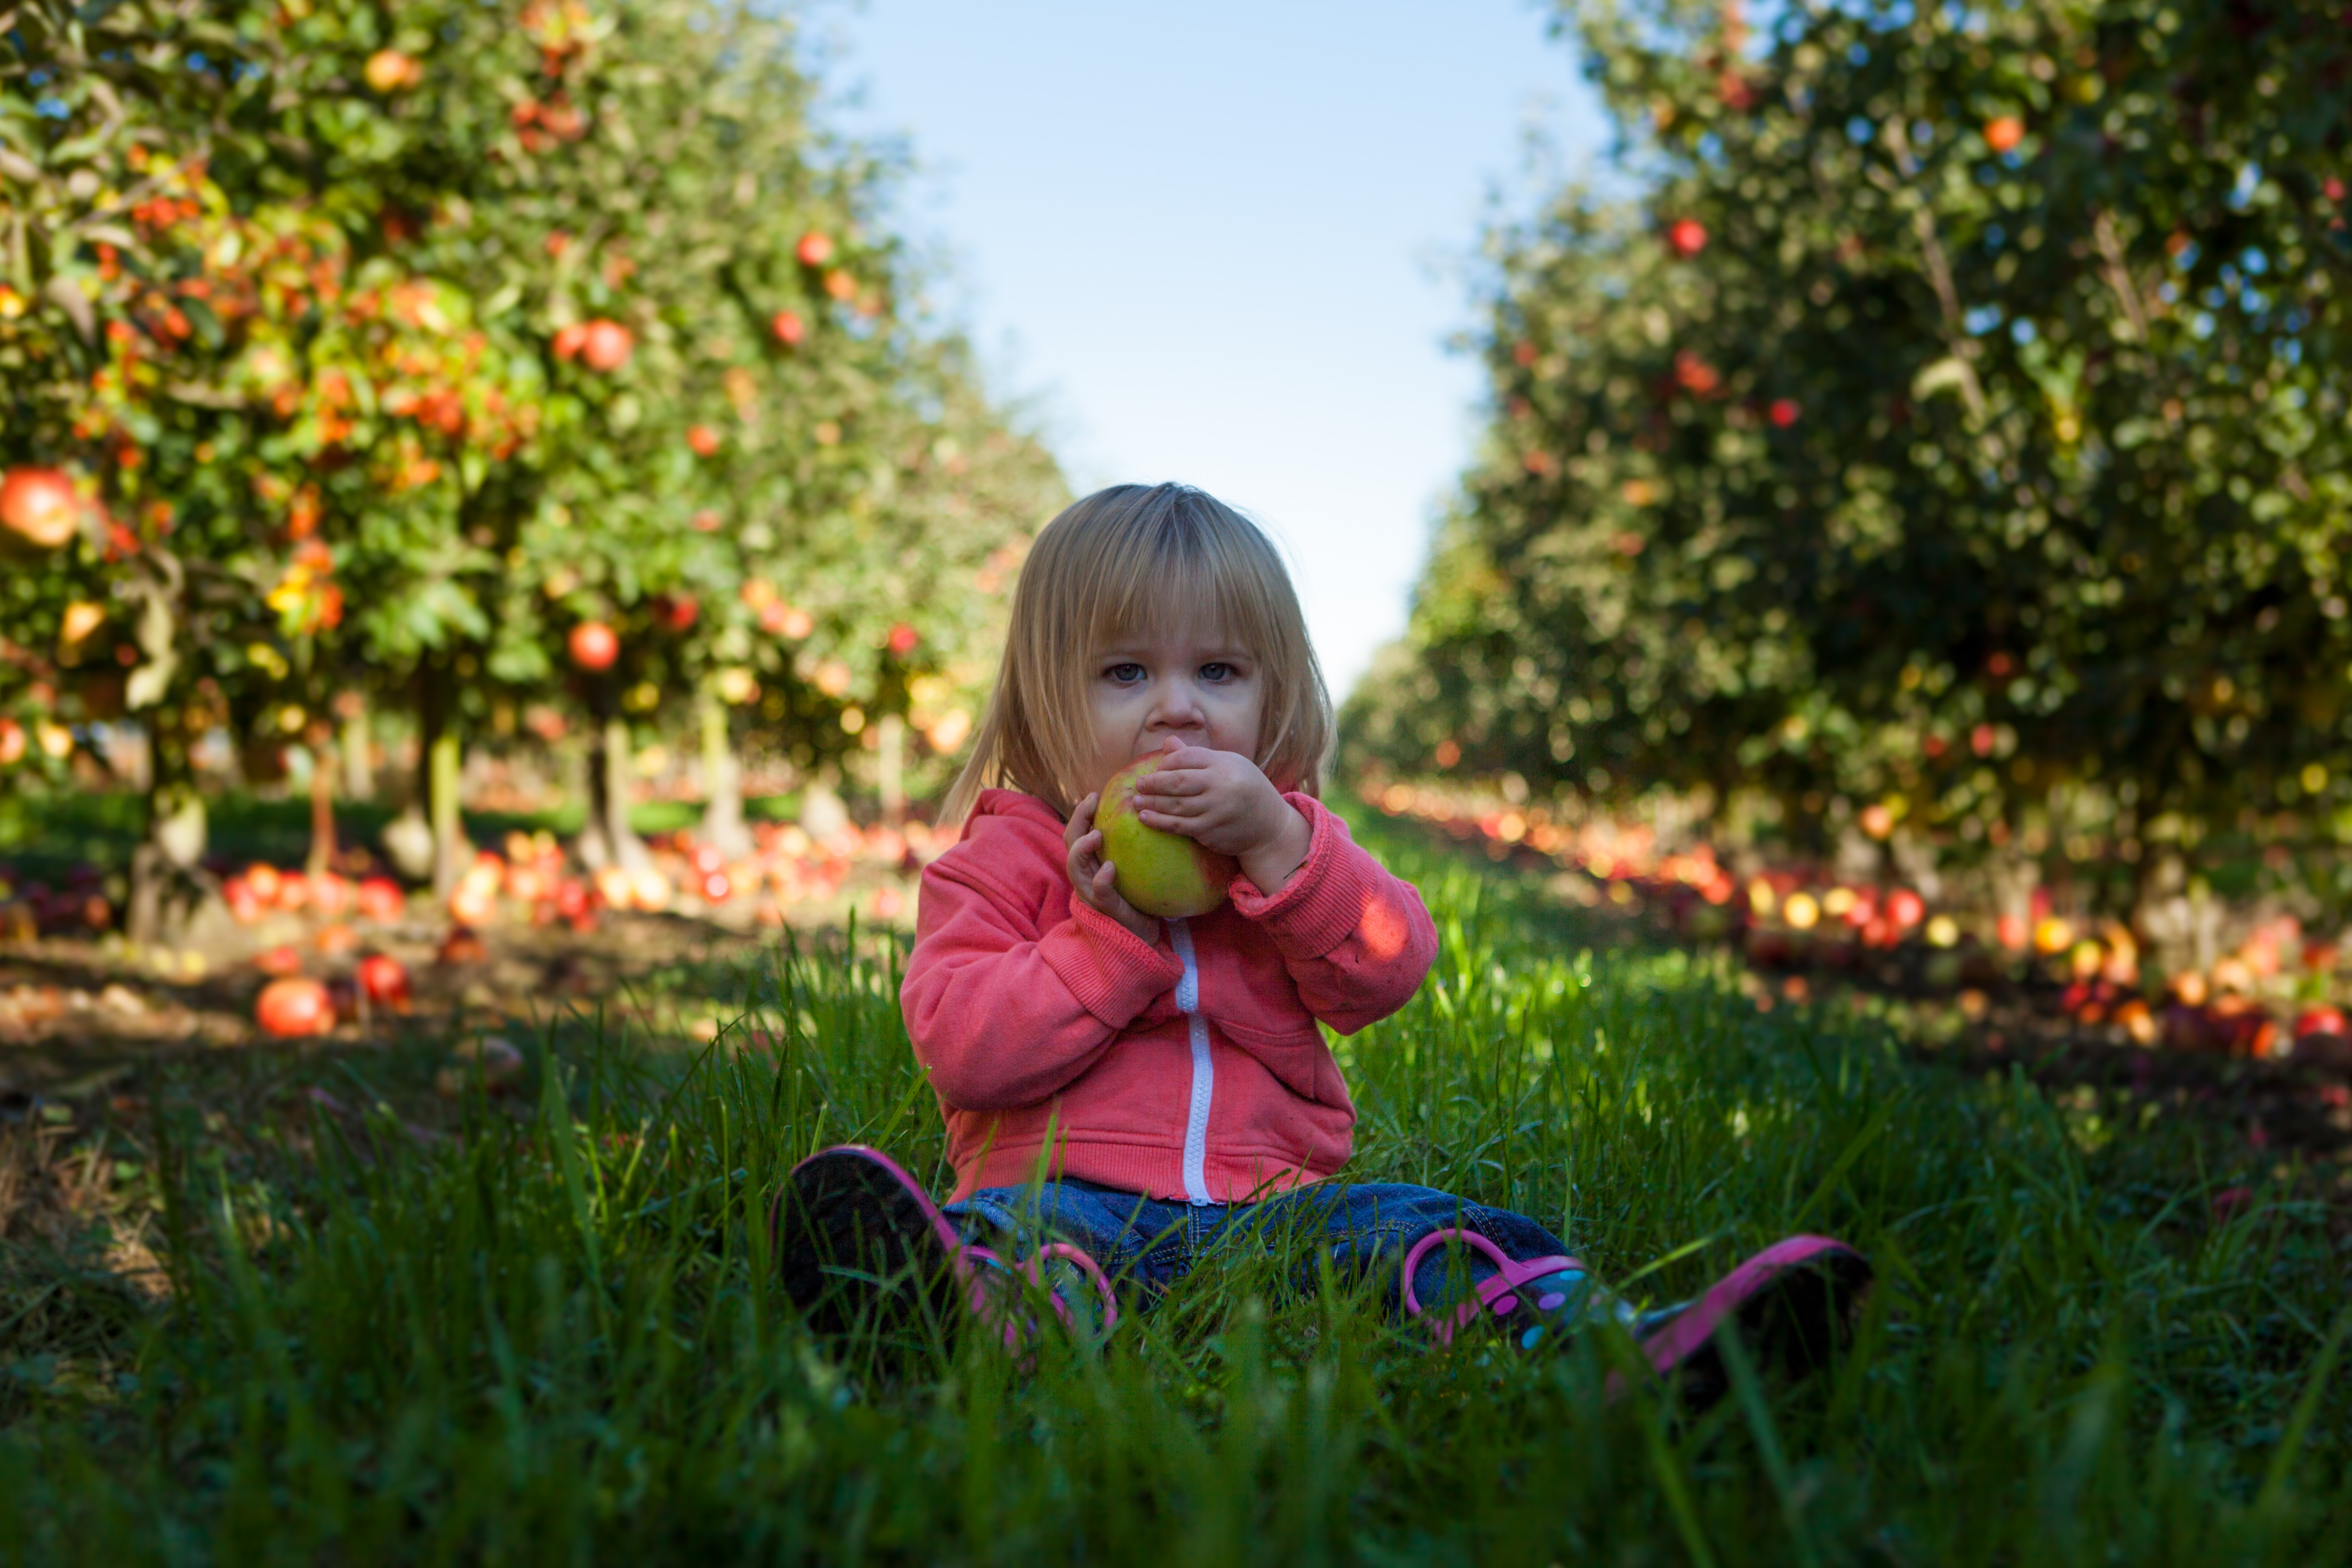 Little girl eating an apple in an orchard